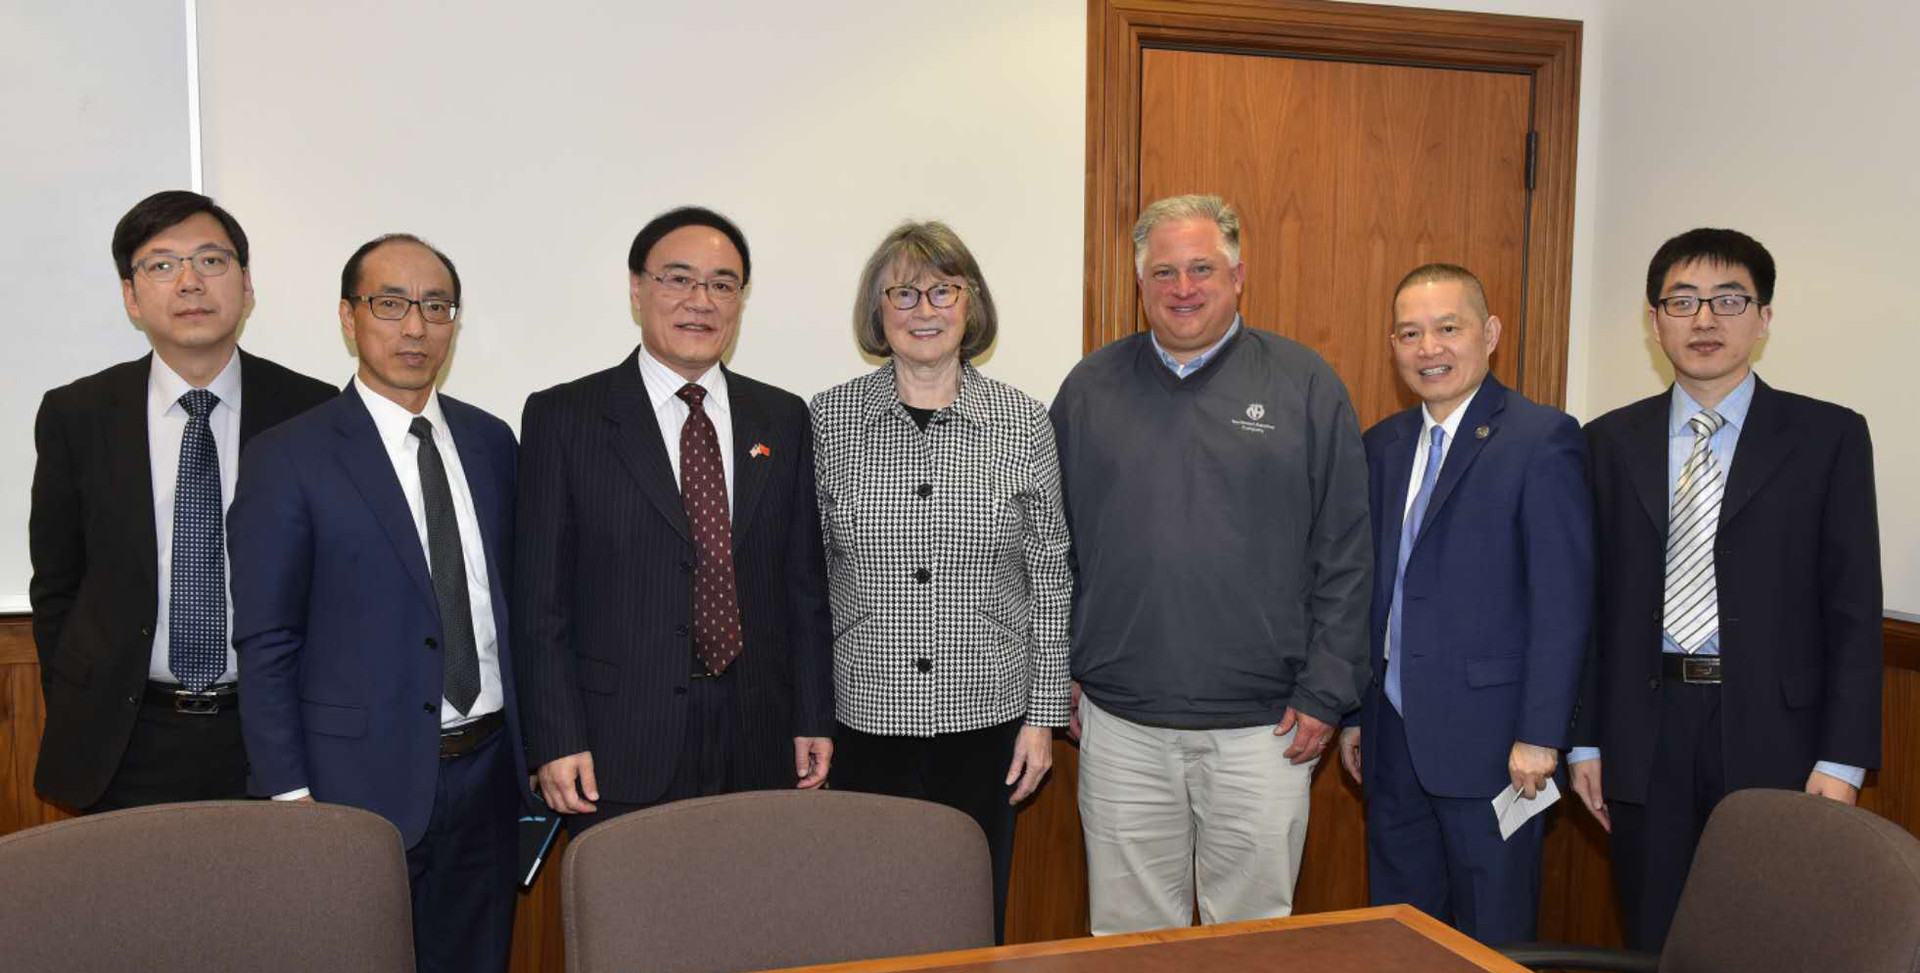 Consul General Wang Donghua and delegation from San Francisco Consulate General, along with Larry George representing Oregon's hazelnut farmers and Jin Lan of Oregon China Council meet with Senate Majority Leader Ginny Burdick on February 24. (l-r: Consul Peng Wenlin, Commercial Counselor Yang Yihang, Consul General Wang, Senator Ginny Burdick, Larry George, Jin Lan and Commercial Consul Zhang Taiming)